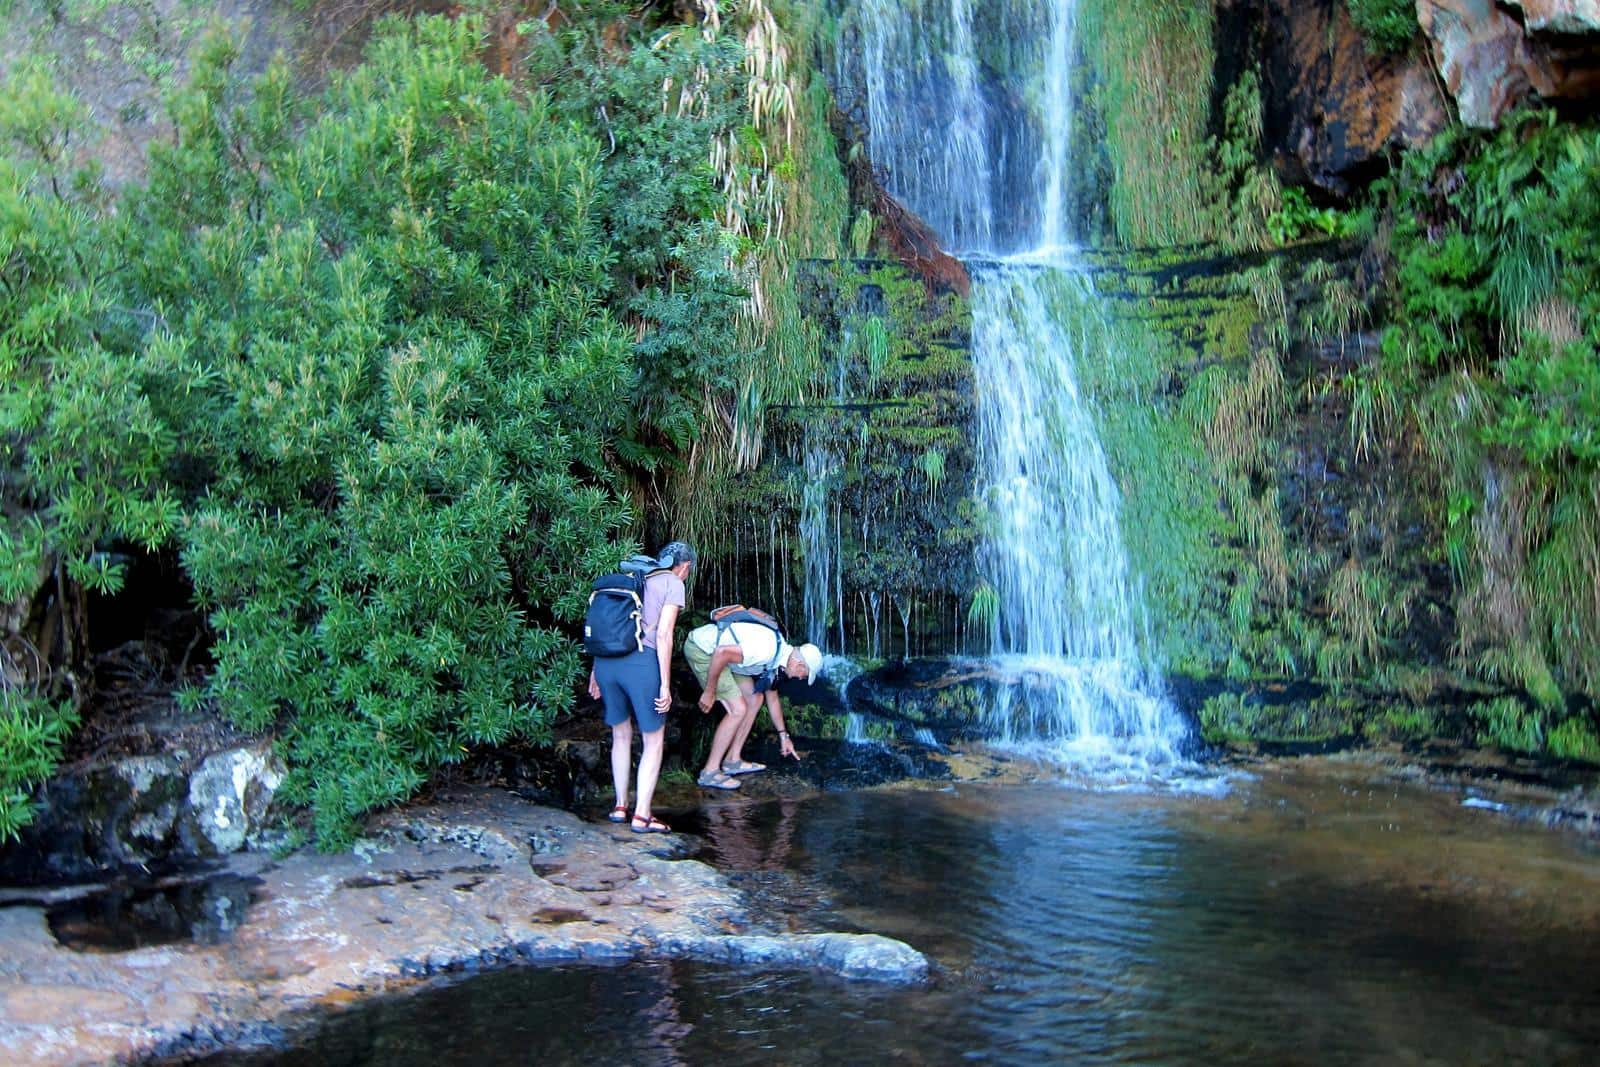 Frank and his wife, Marijke, enjoying the Algeria Waterfall.